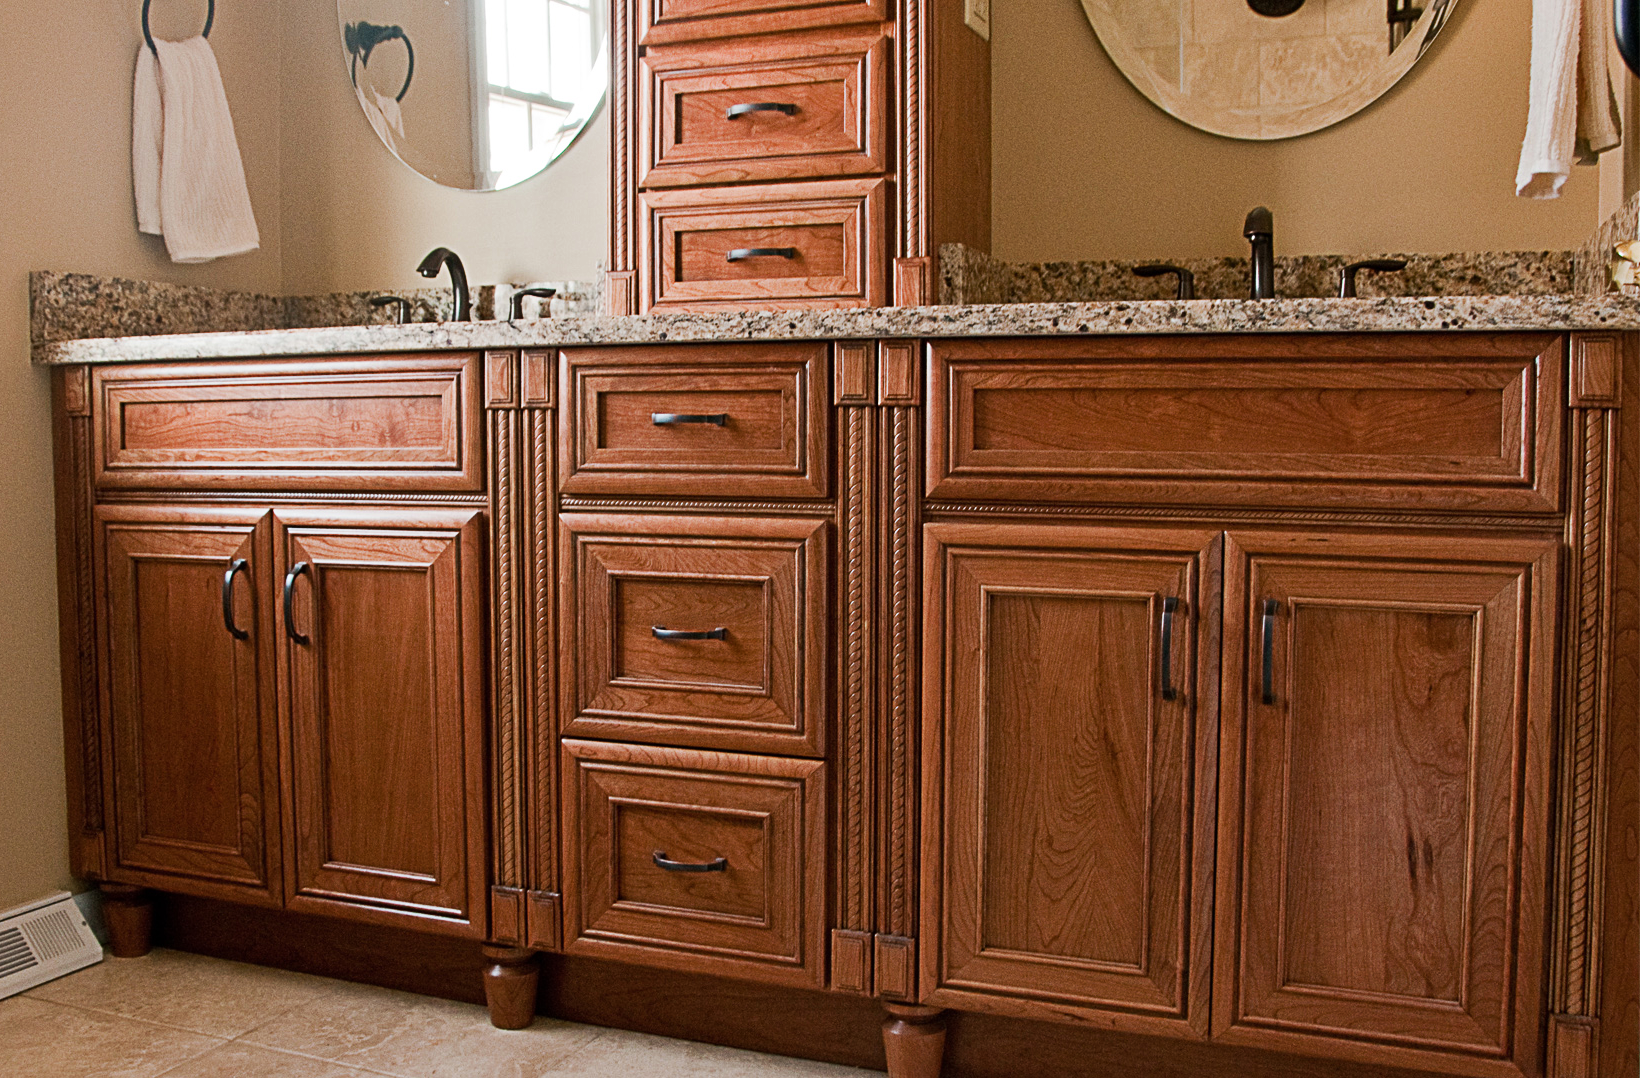 Bathroom Vanities Tucson bathroom remodeling tucson az - free in home estimates